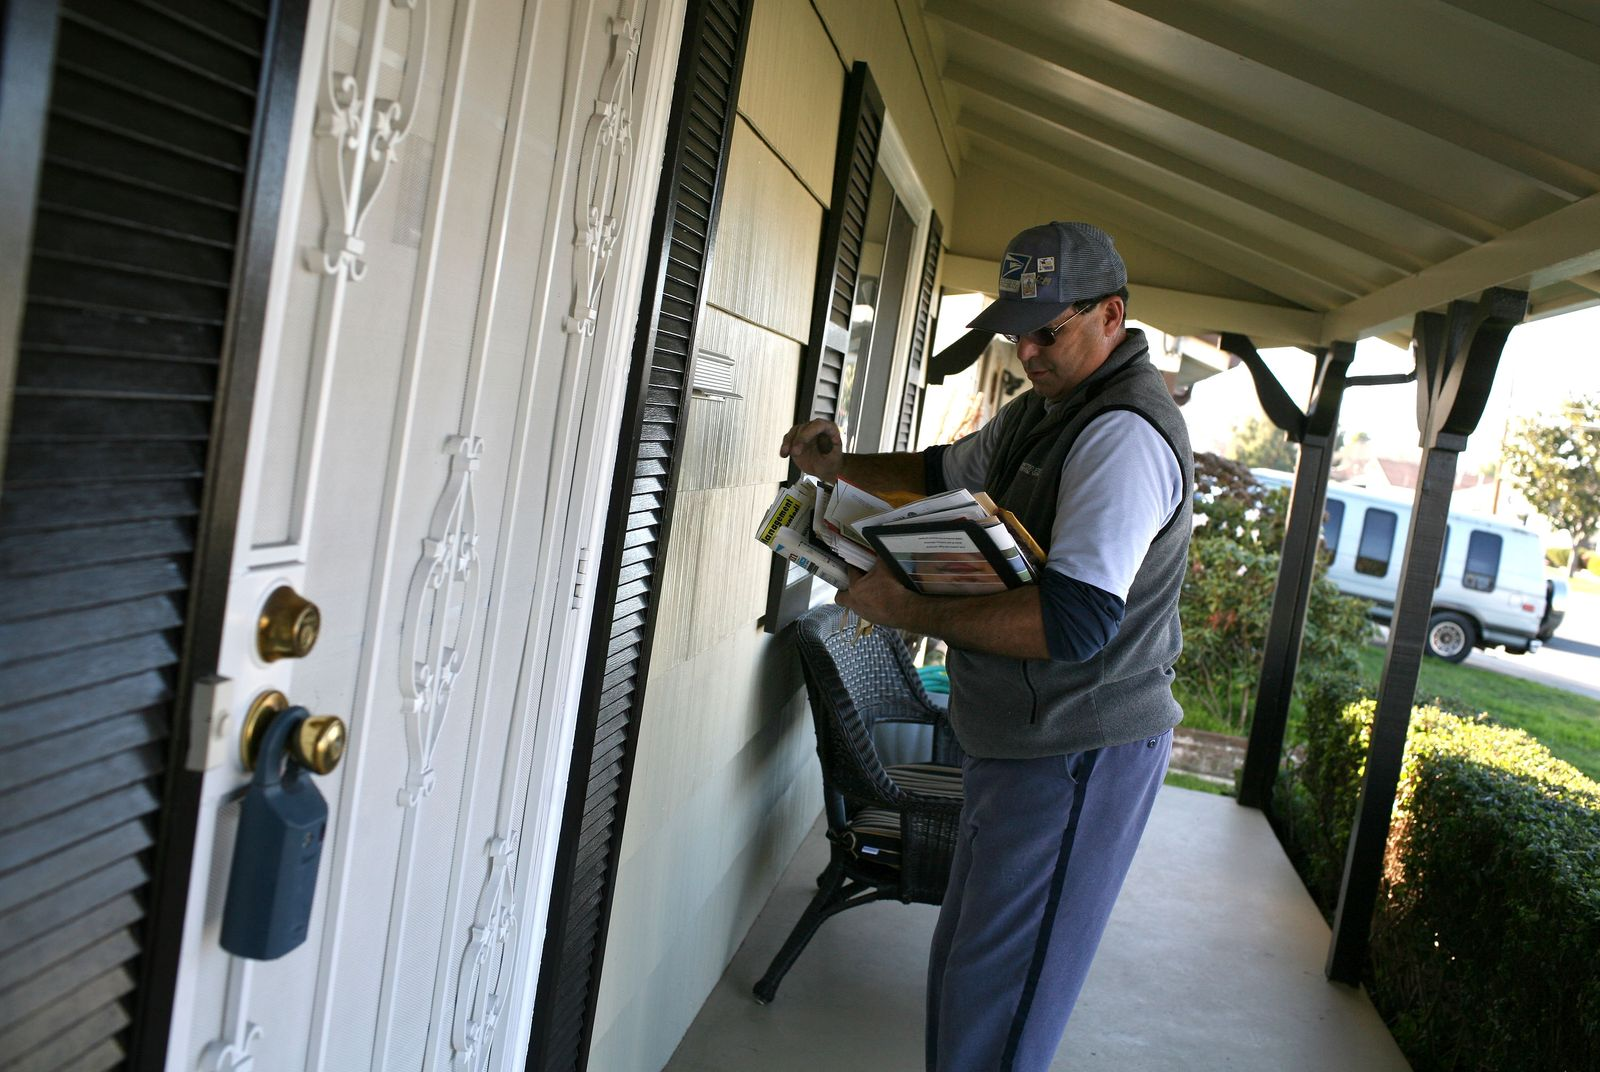 U.S. Postal Service Considers Cutting Mail Delivery By One Day